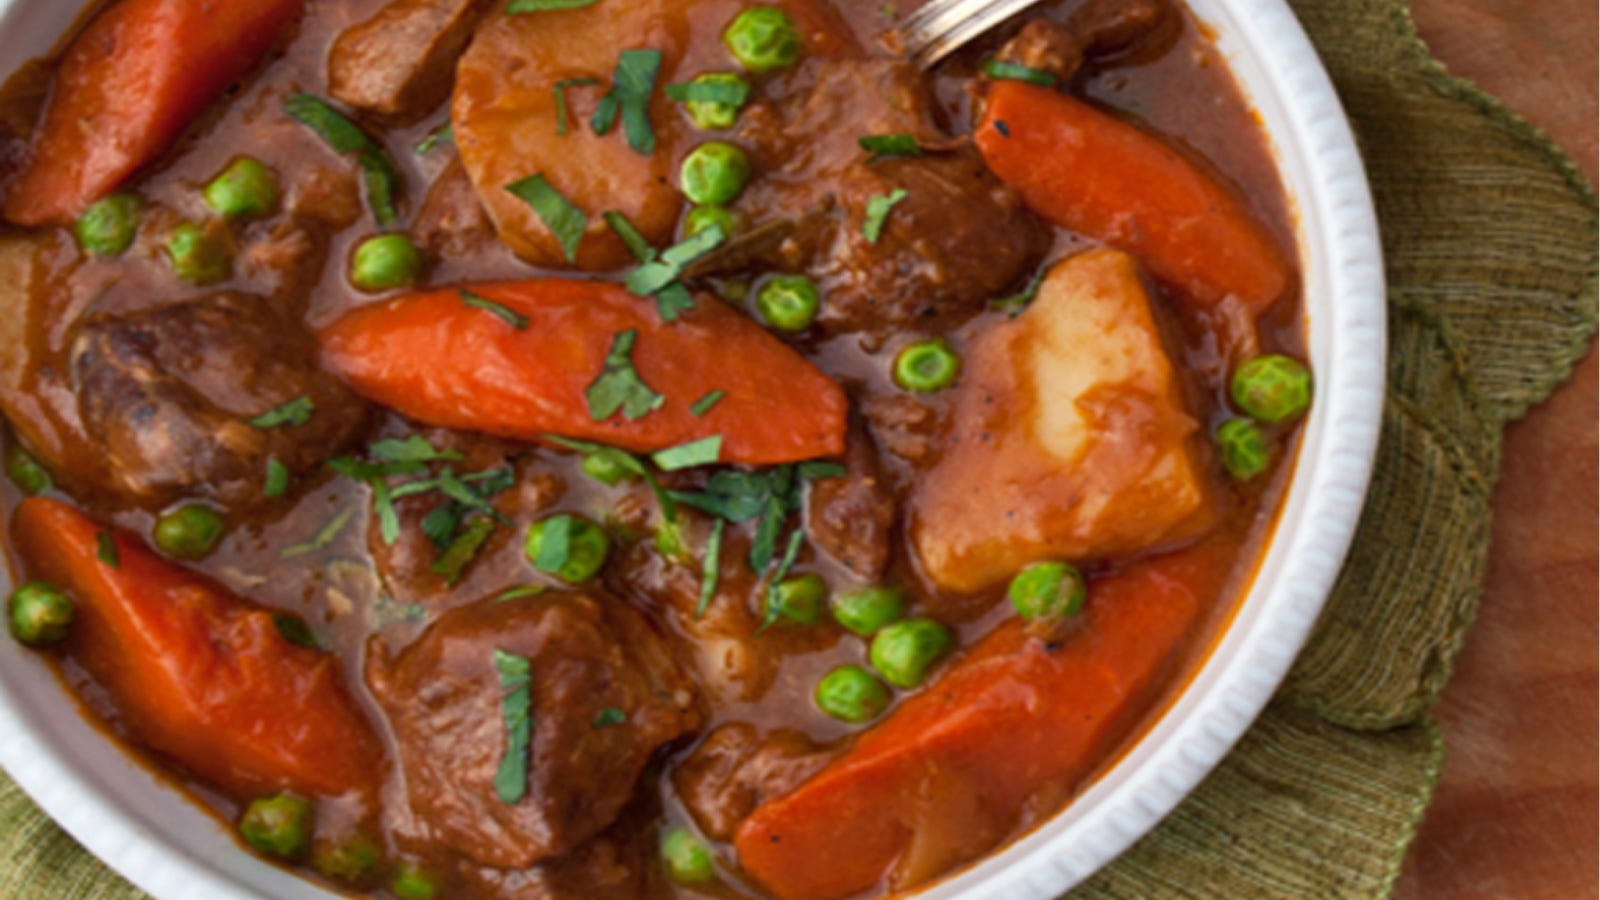 A bowl of Lamb and Guinness stew, filled with carrots, potatoes, and hearty chunks of lamb.